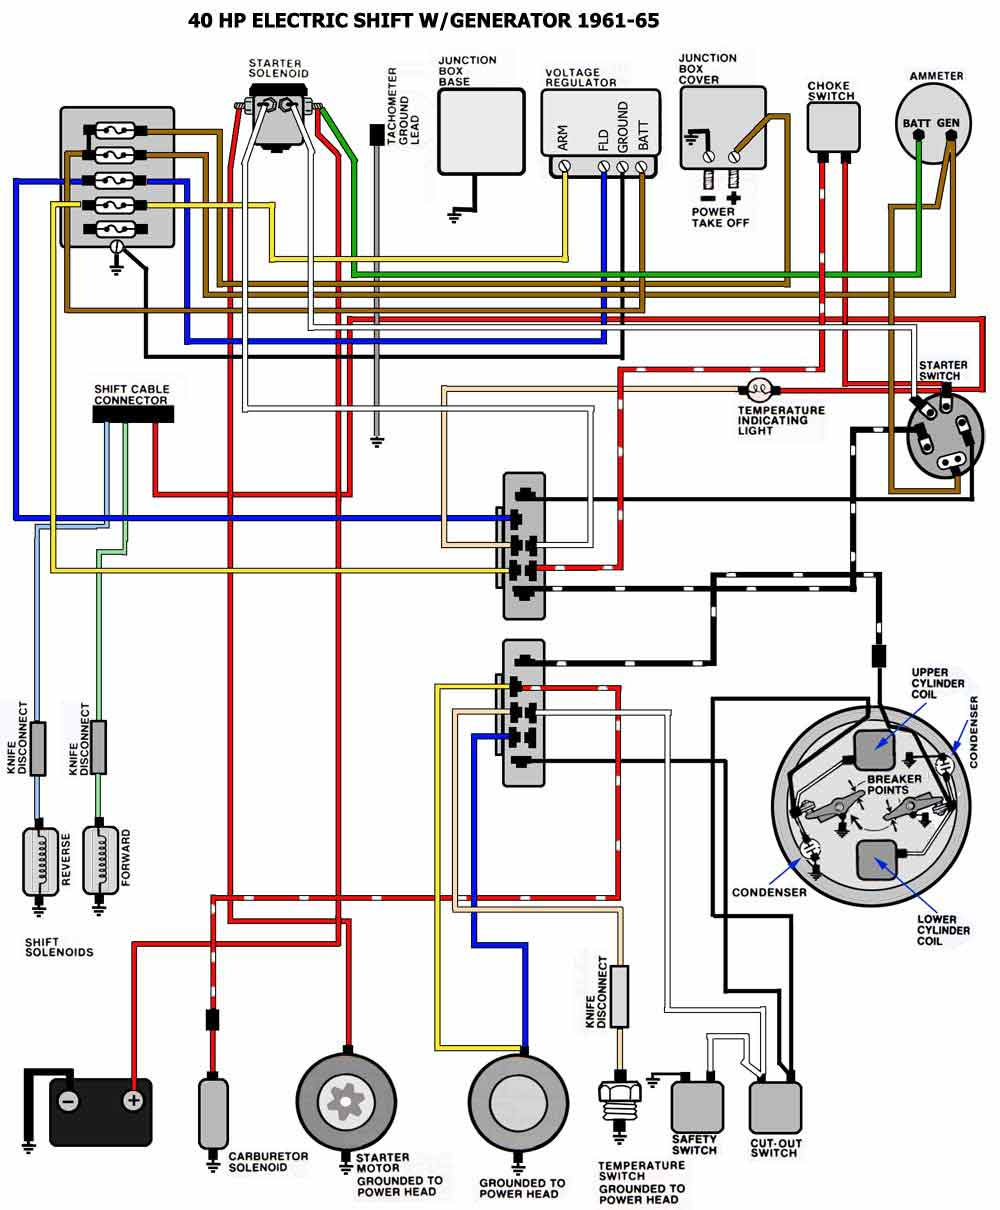 70 hp johnson ignition switch wiring diagram 85 hp johnson outboard motor wiring diagram evinrude johnson outboard wiring diagrams -- mastertech ... #14